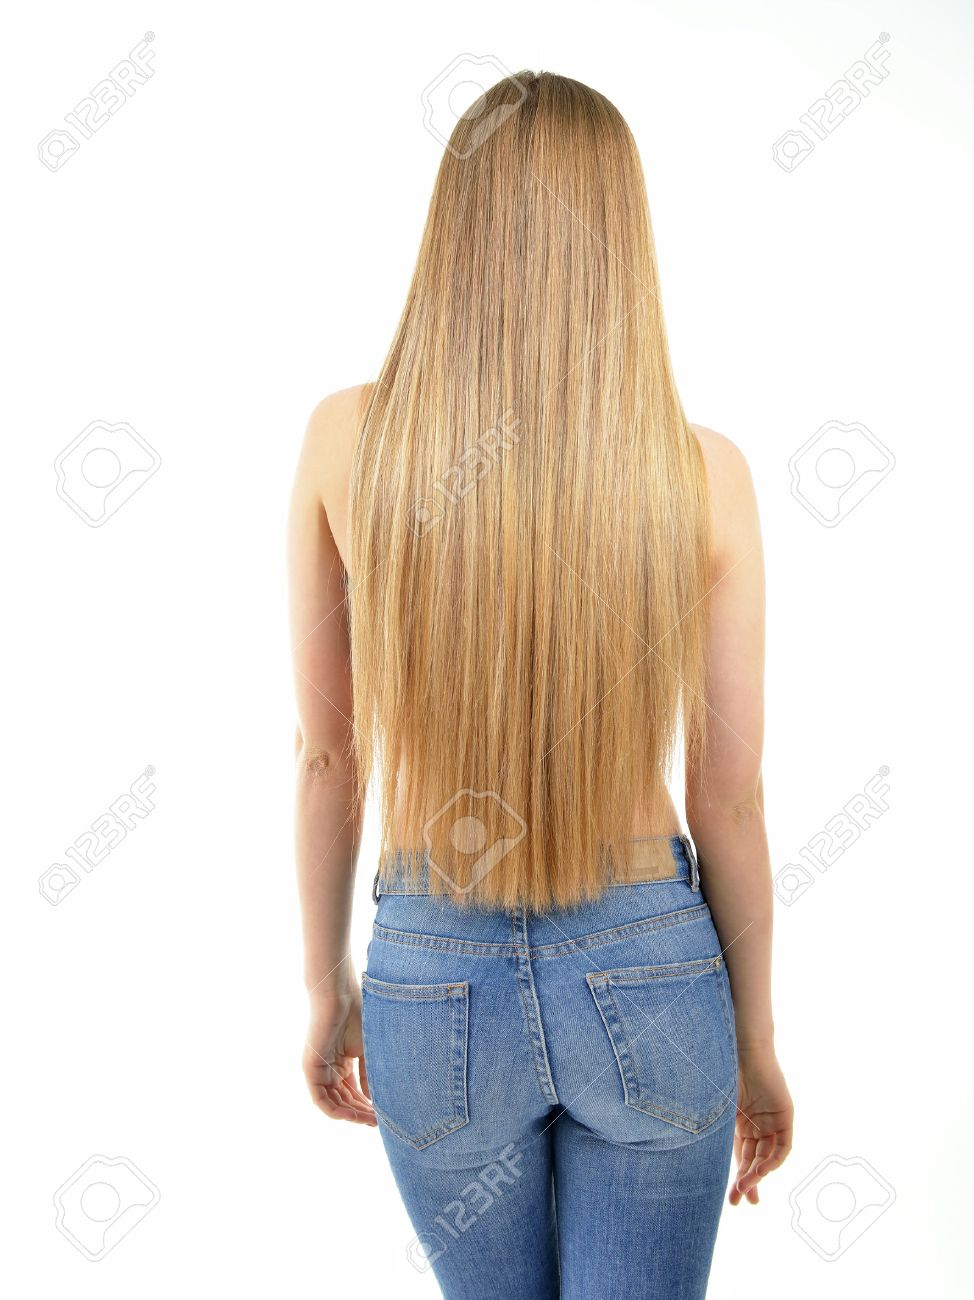 hair. beautiful woman with long healthy shiny smooth hair. back